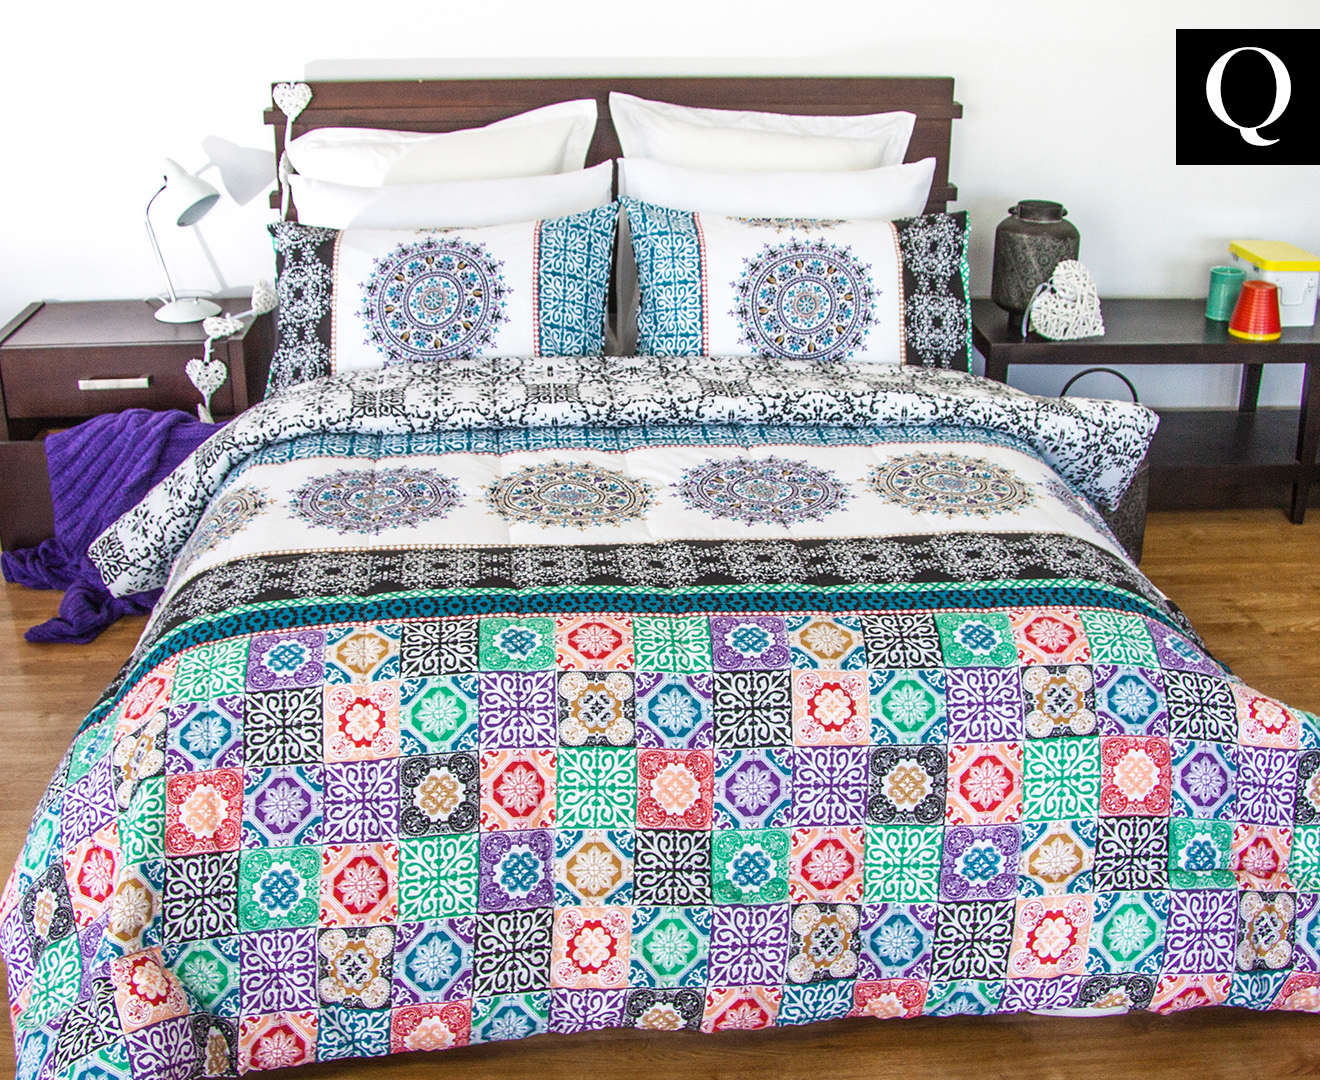 flower decor sets pure slate room willow nightstand woven with bedding set pillows comforters white dkny modern wall bloomingdales bedroom brown yellow luxury comforter contemporary ideas carpet soft painted